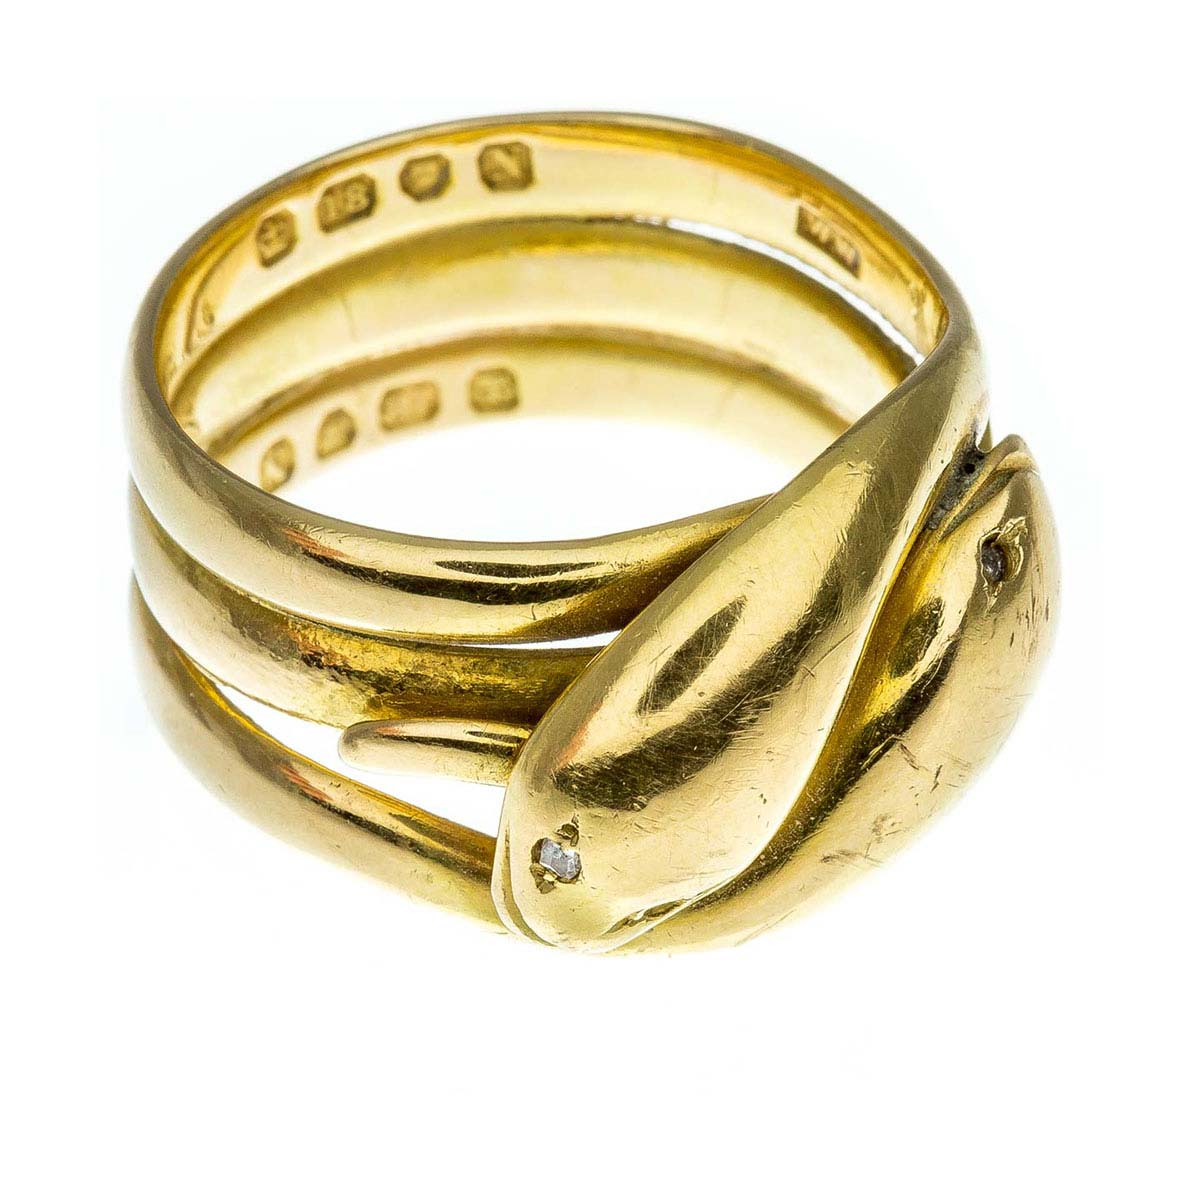 Antique Victorian 18ct gold snake ring